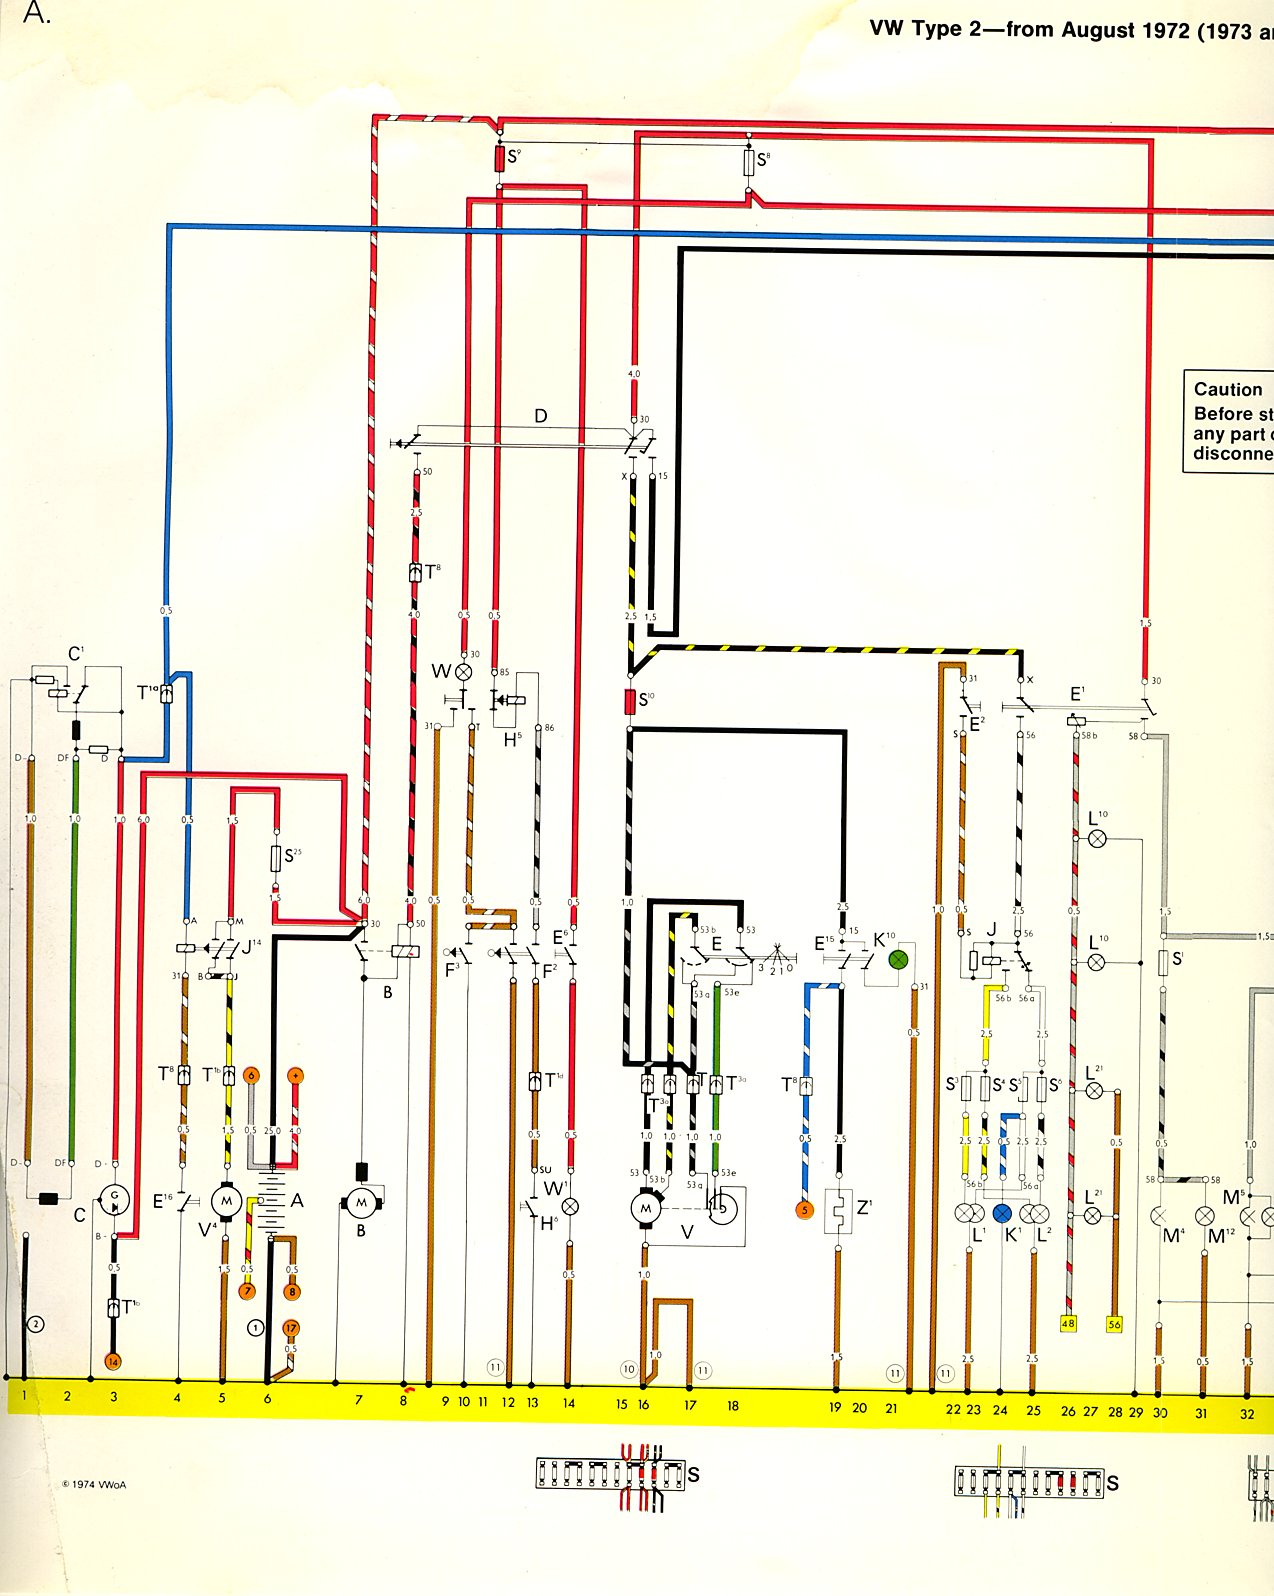 baybus_7374a vw bus wiring diagram 1965 vw bus wiring diagram \u2022 wiring diagrams 1970 vw bug wiring diagram at fashall.co